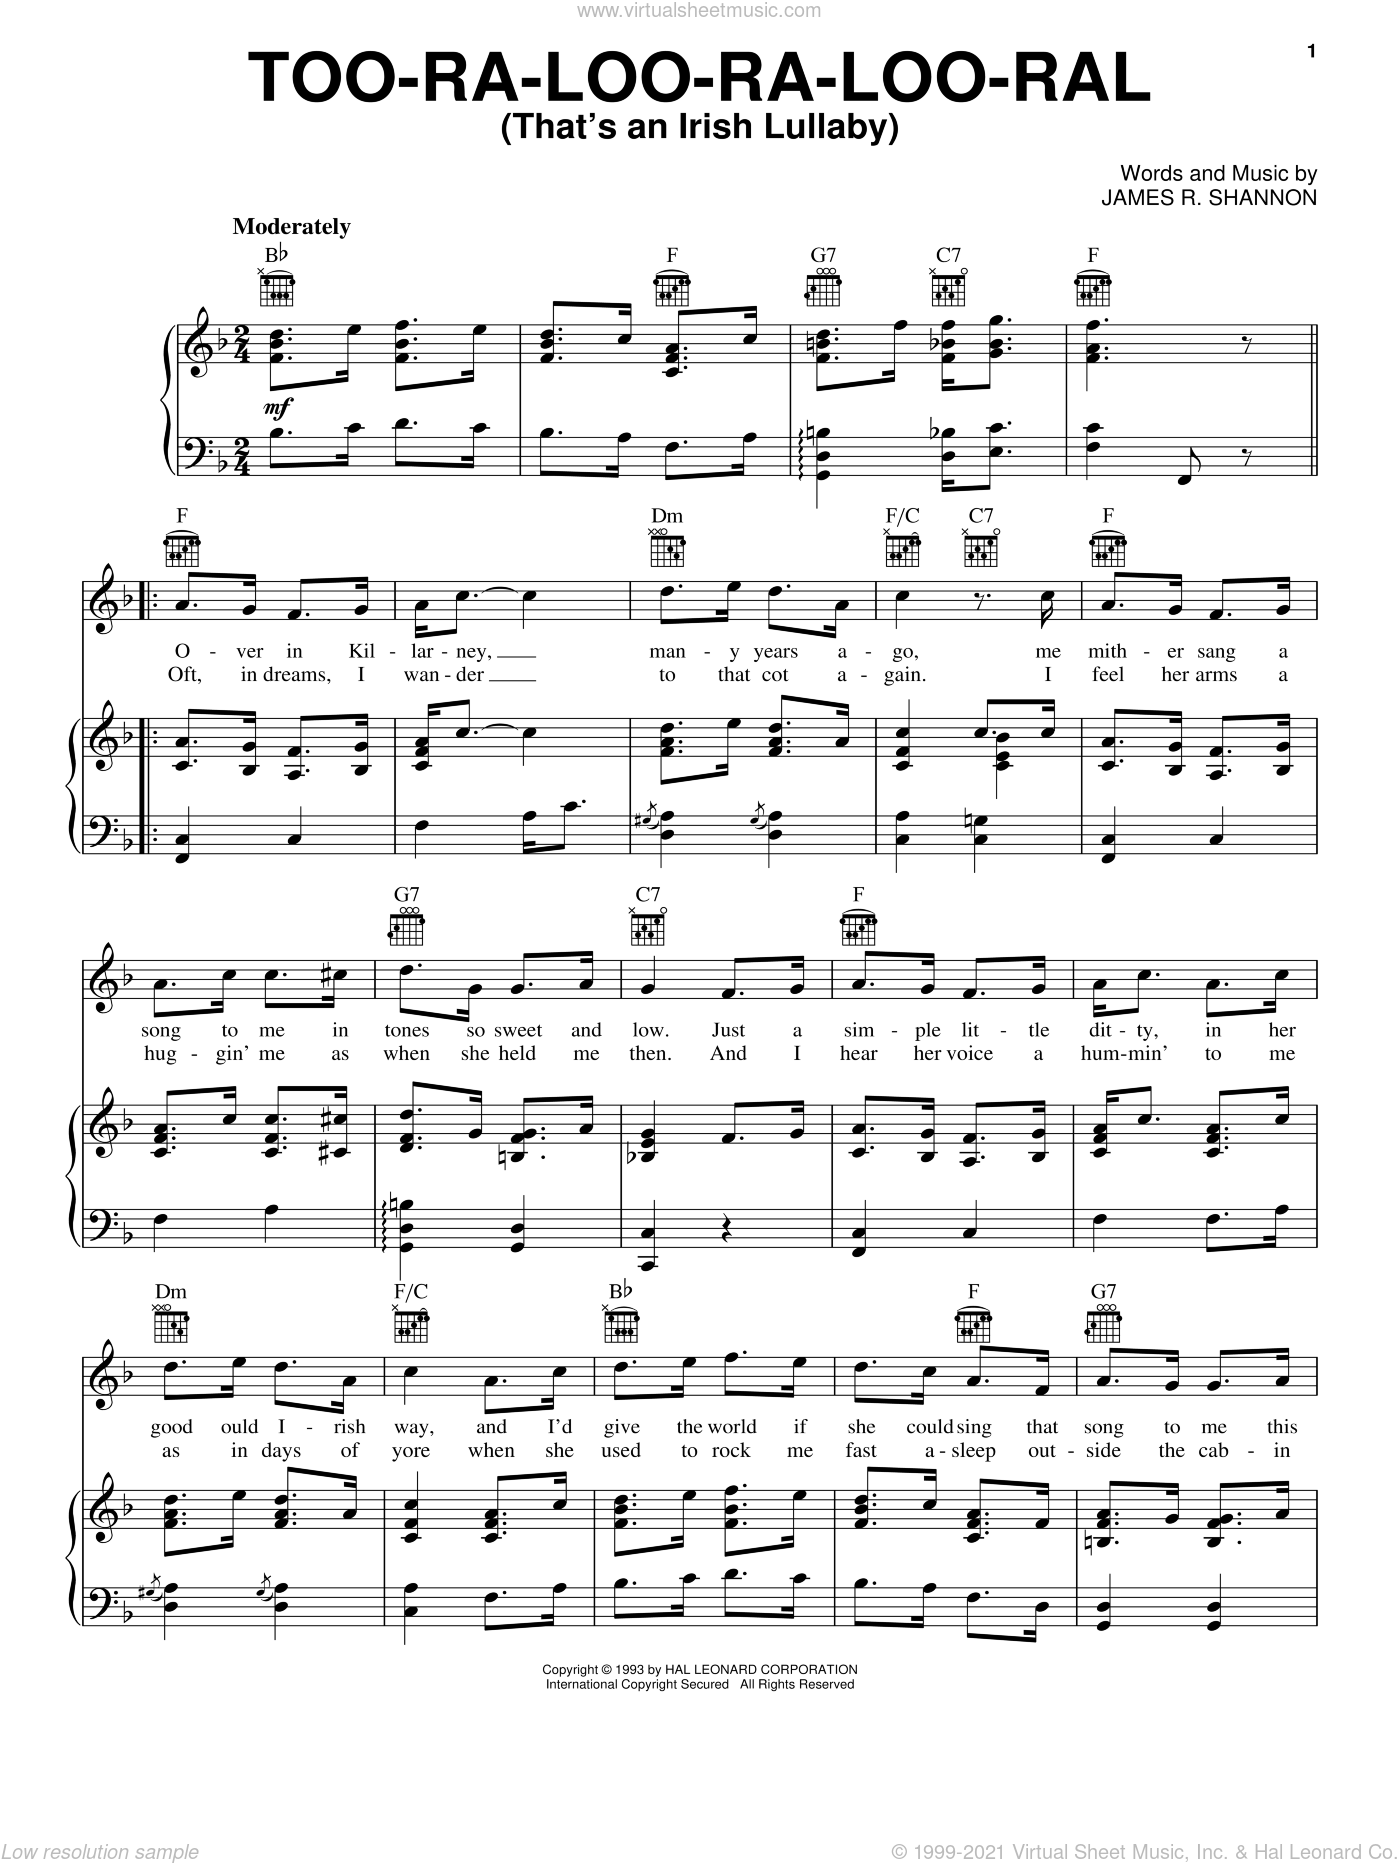 Too-Ra-Loo-Ra-Loo-Ral (That's An Irish Lullaby) sheet music for voice, piano or guitar by James R. Shannon, intermediate skill level